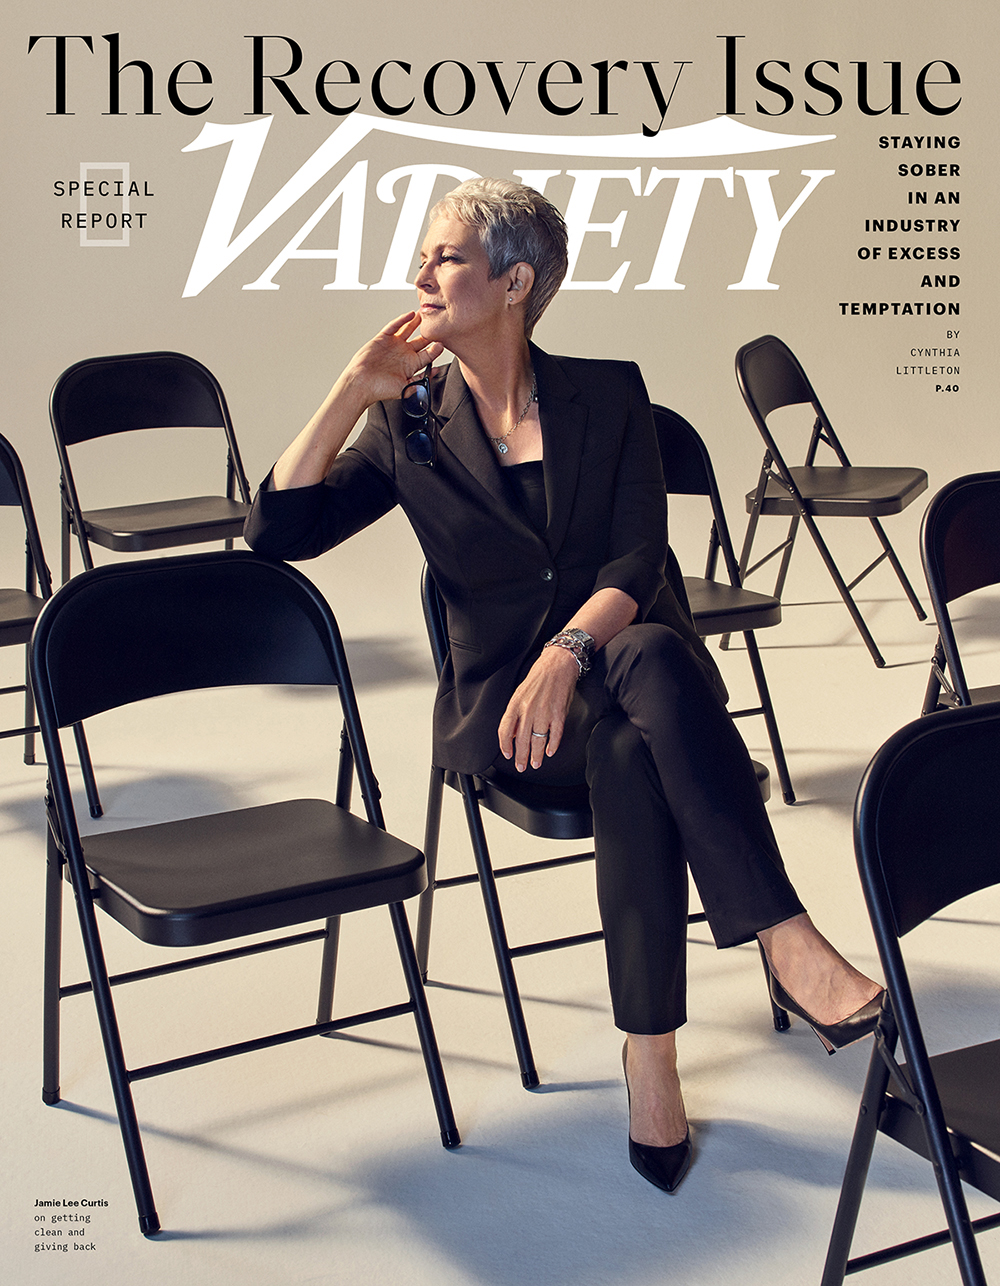 Jamie-Lee-Curtis-Details-Her-Past-Addiction-to-Vicodin-After-Celebrating-20-Years-of-Sobriety